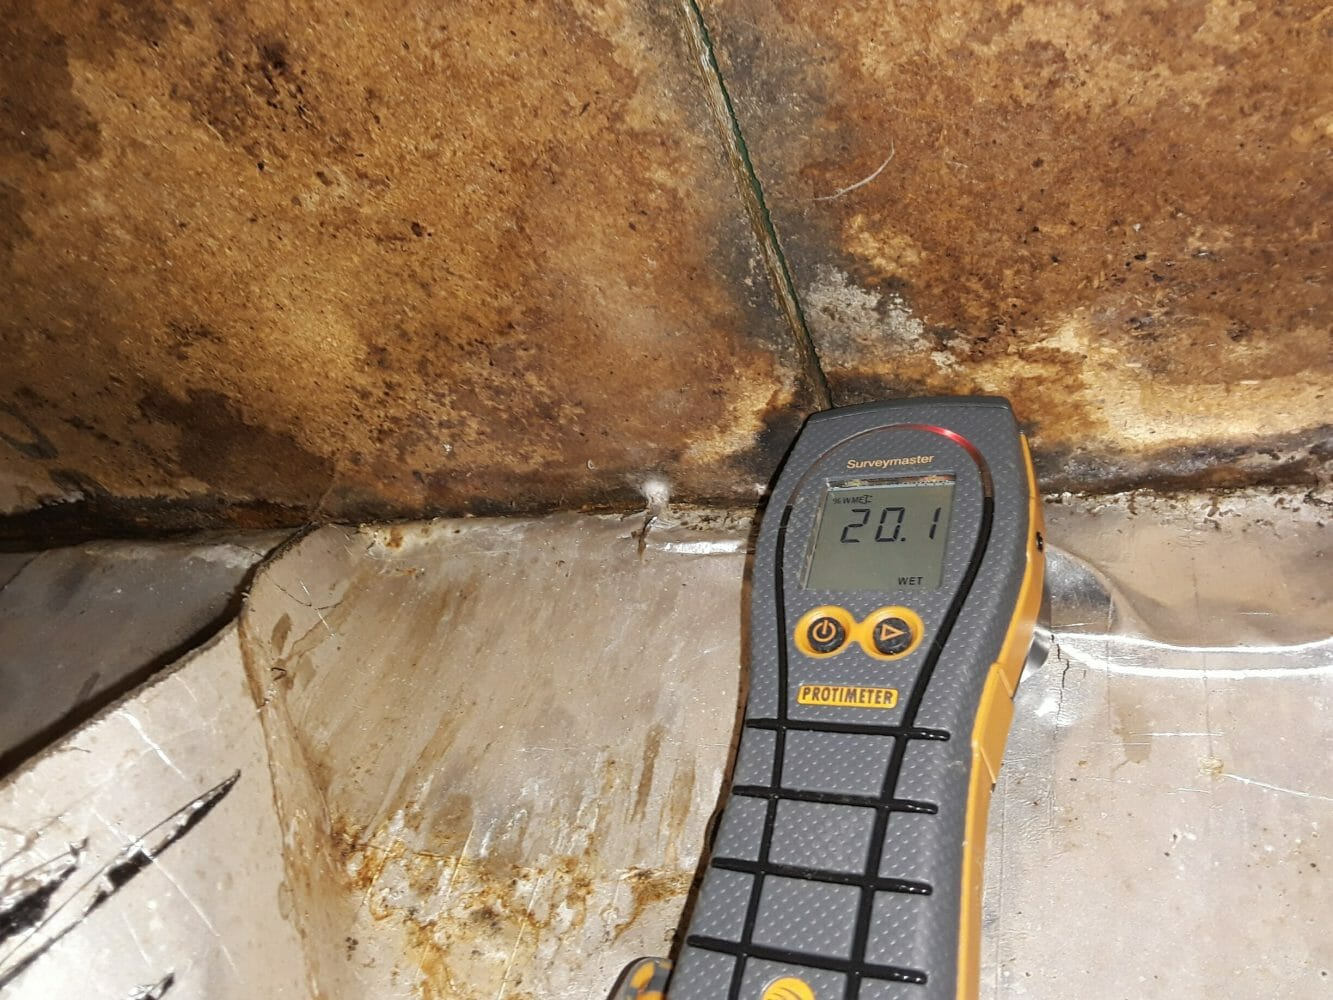 """Sub Floor - Higher than normal moisture readings were indicated. There is moisture damage to the flooring and further investigation is required by a Licensed Building Practitioner."""